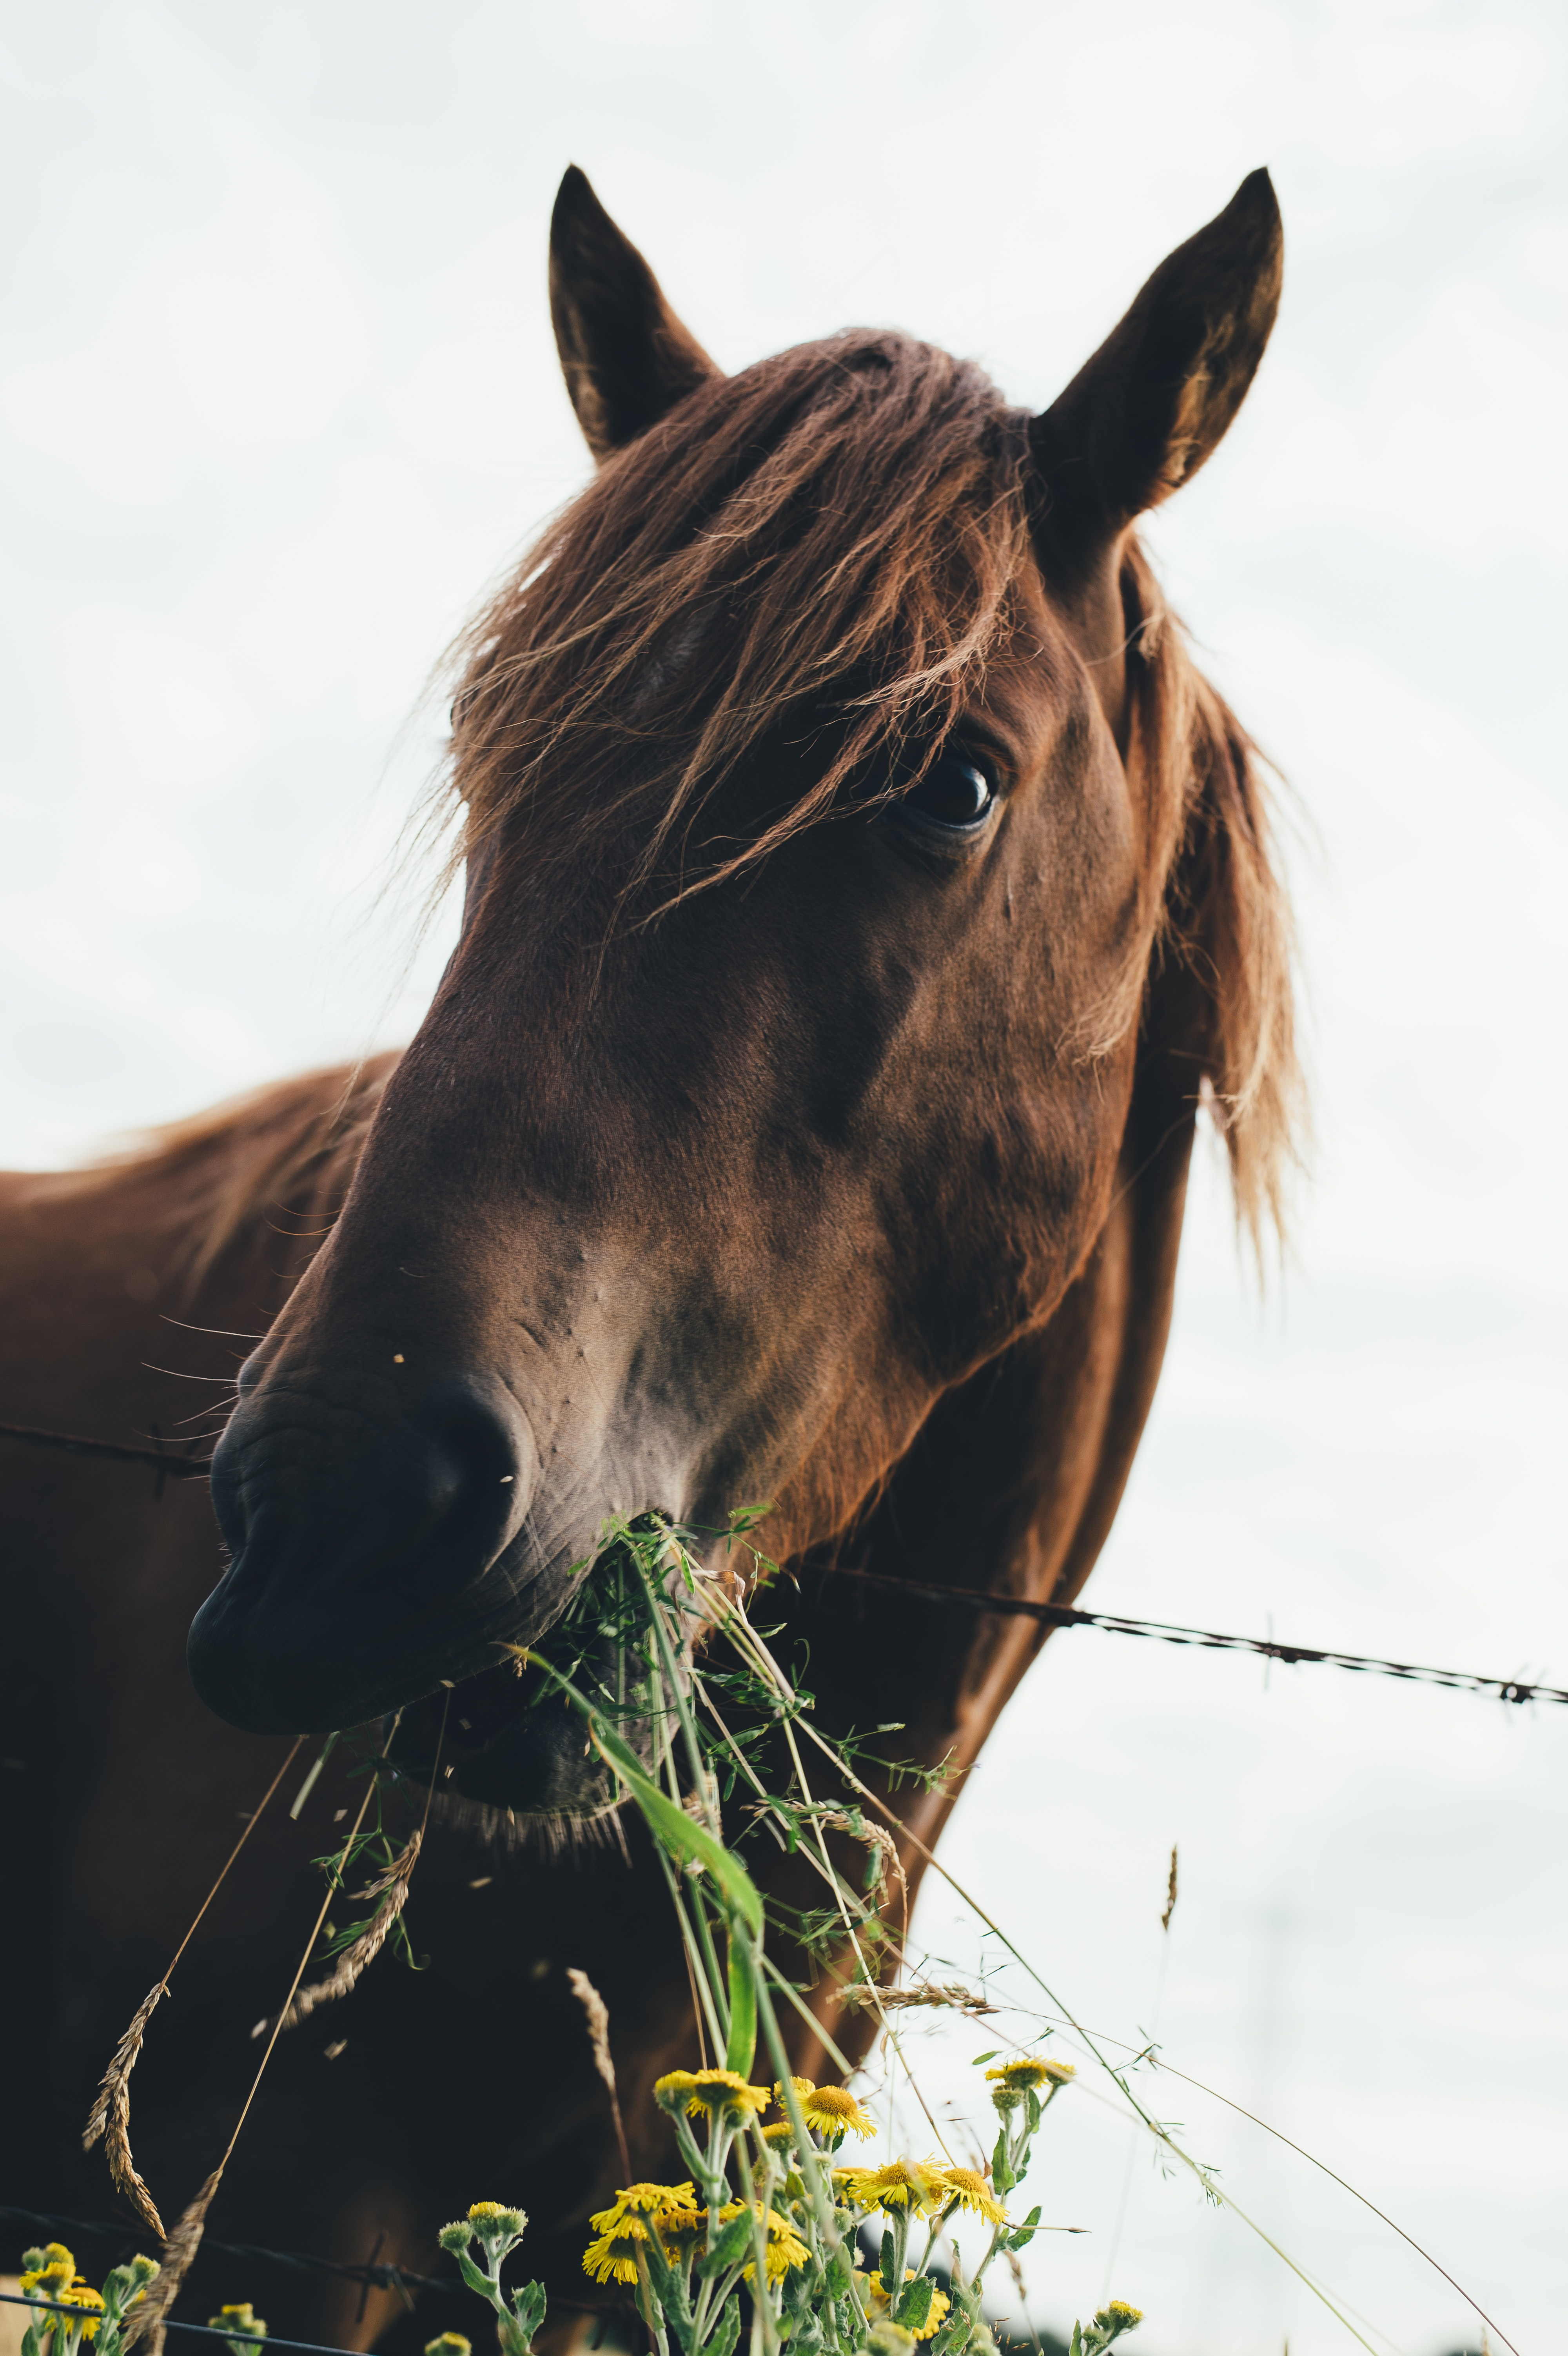 A low-angle shot of a horse chewing on a clump of grass